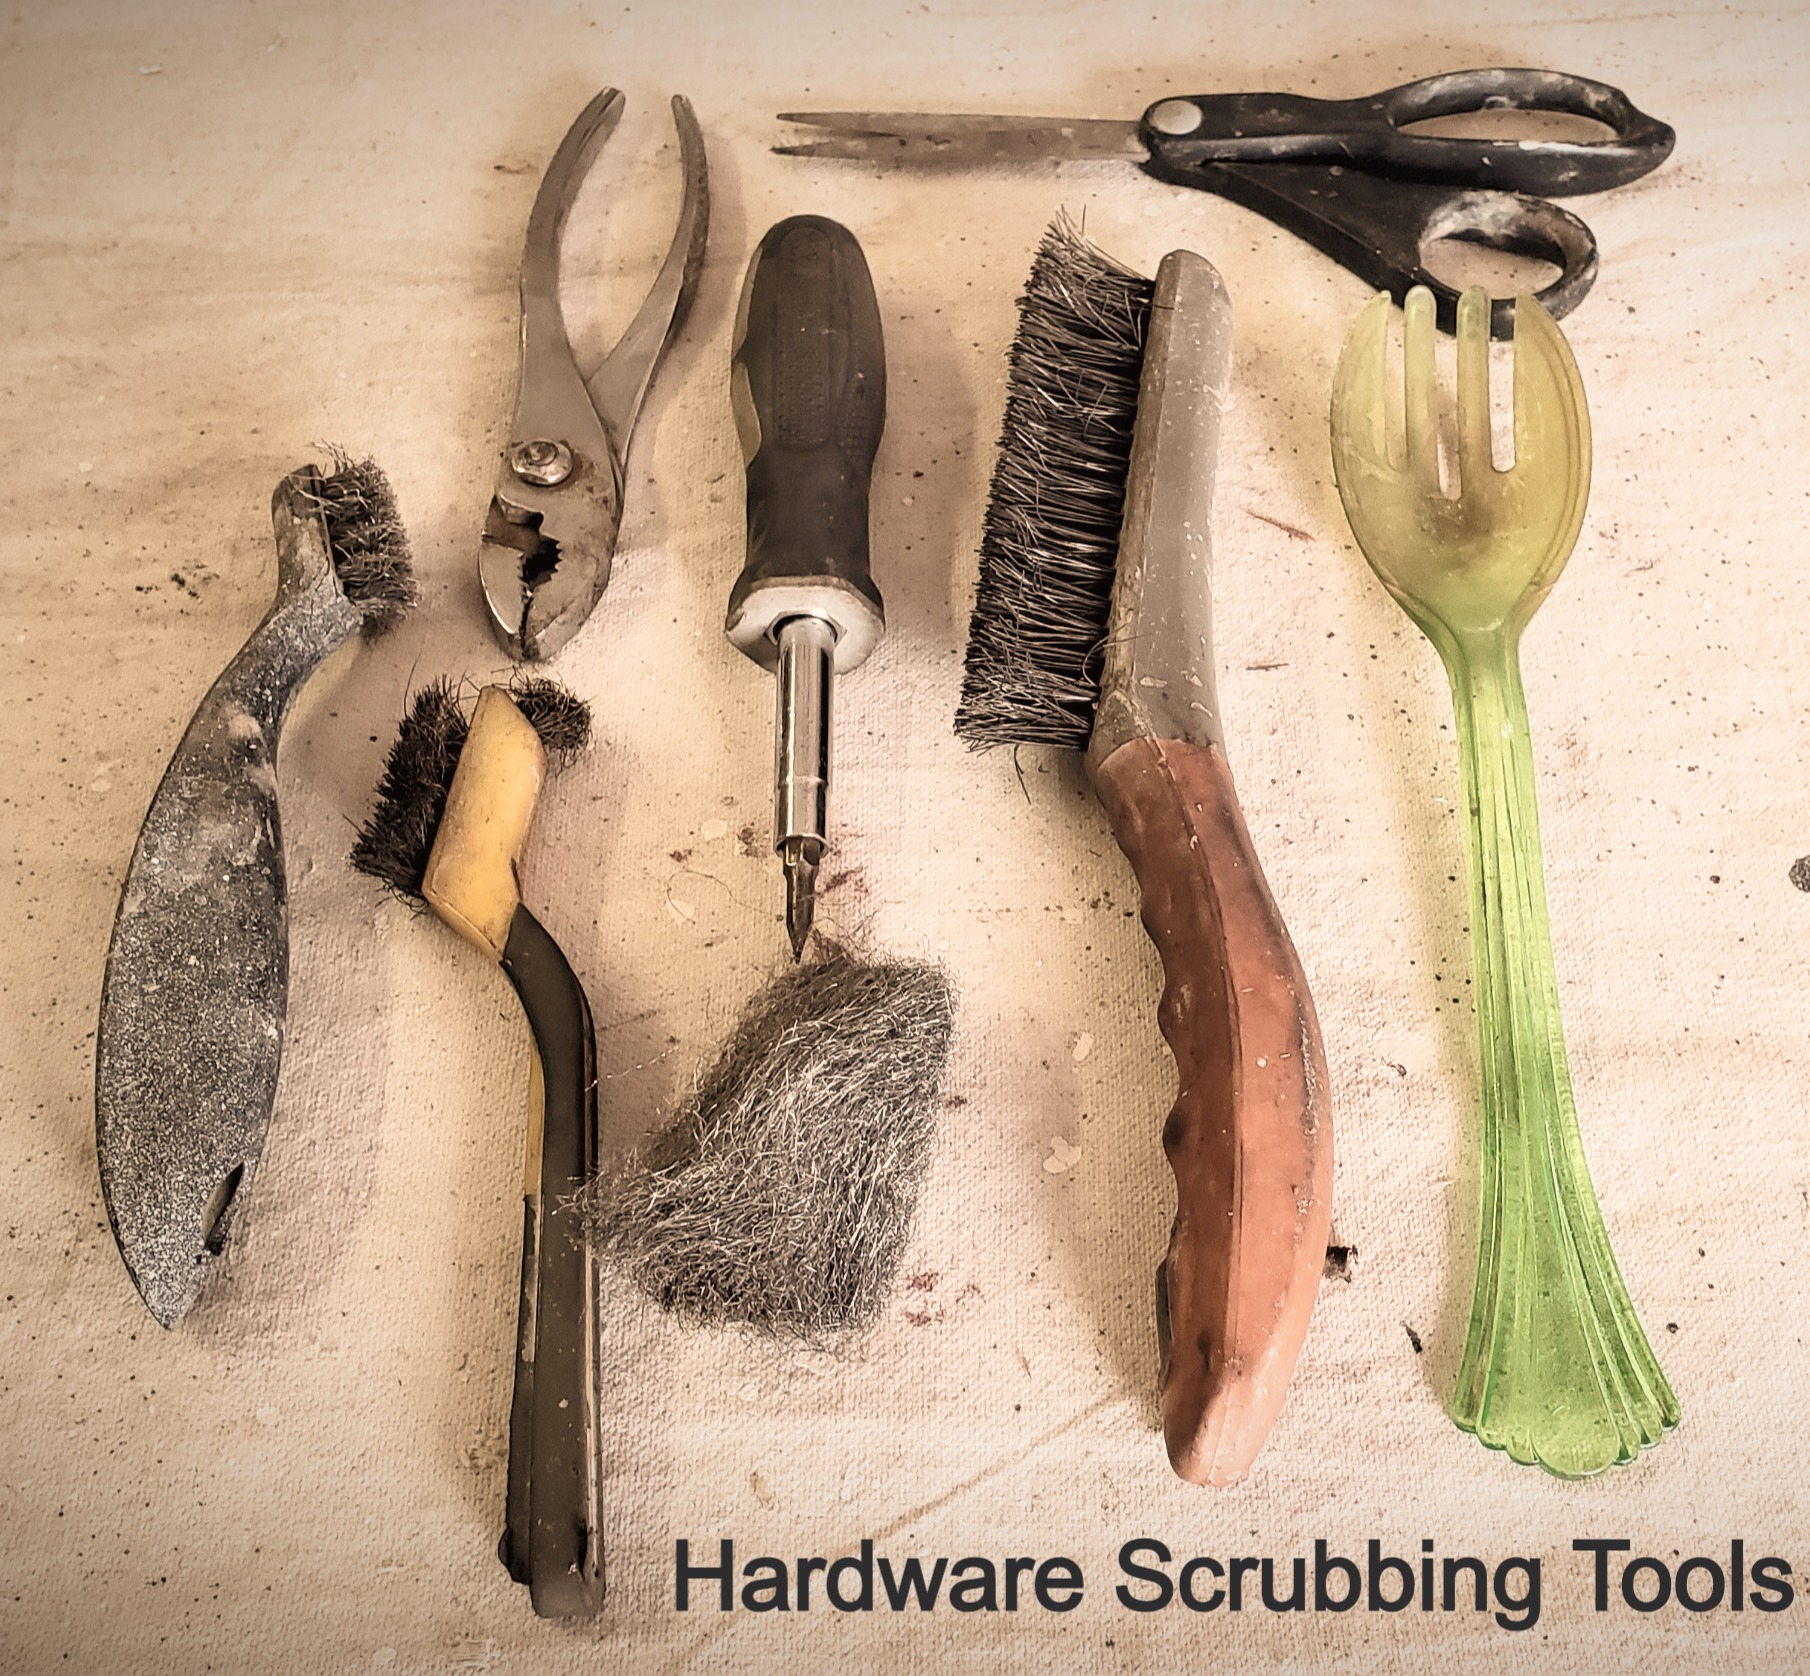 Hardware stripping tools